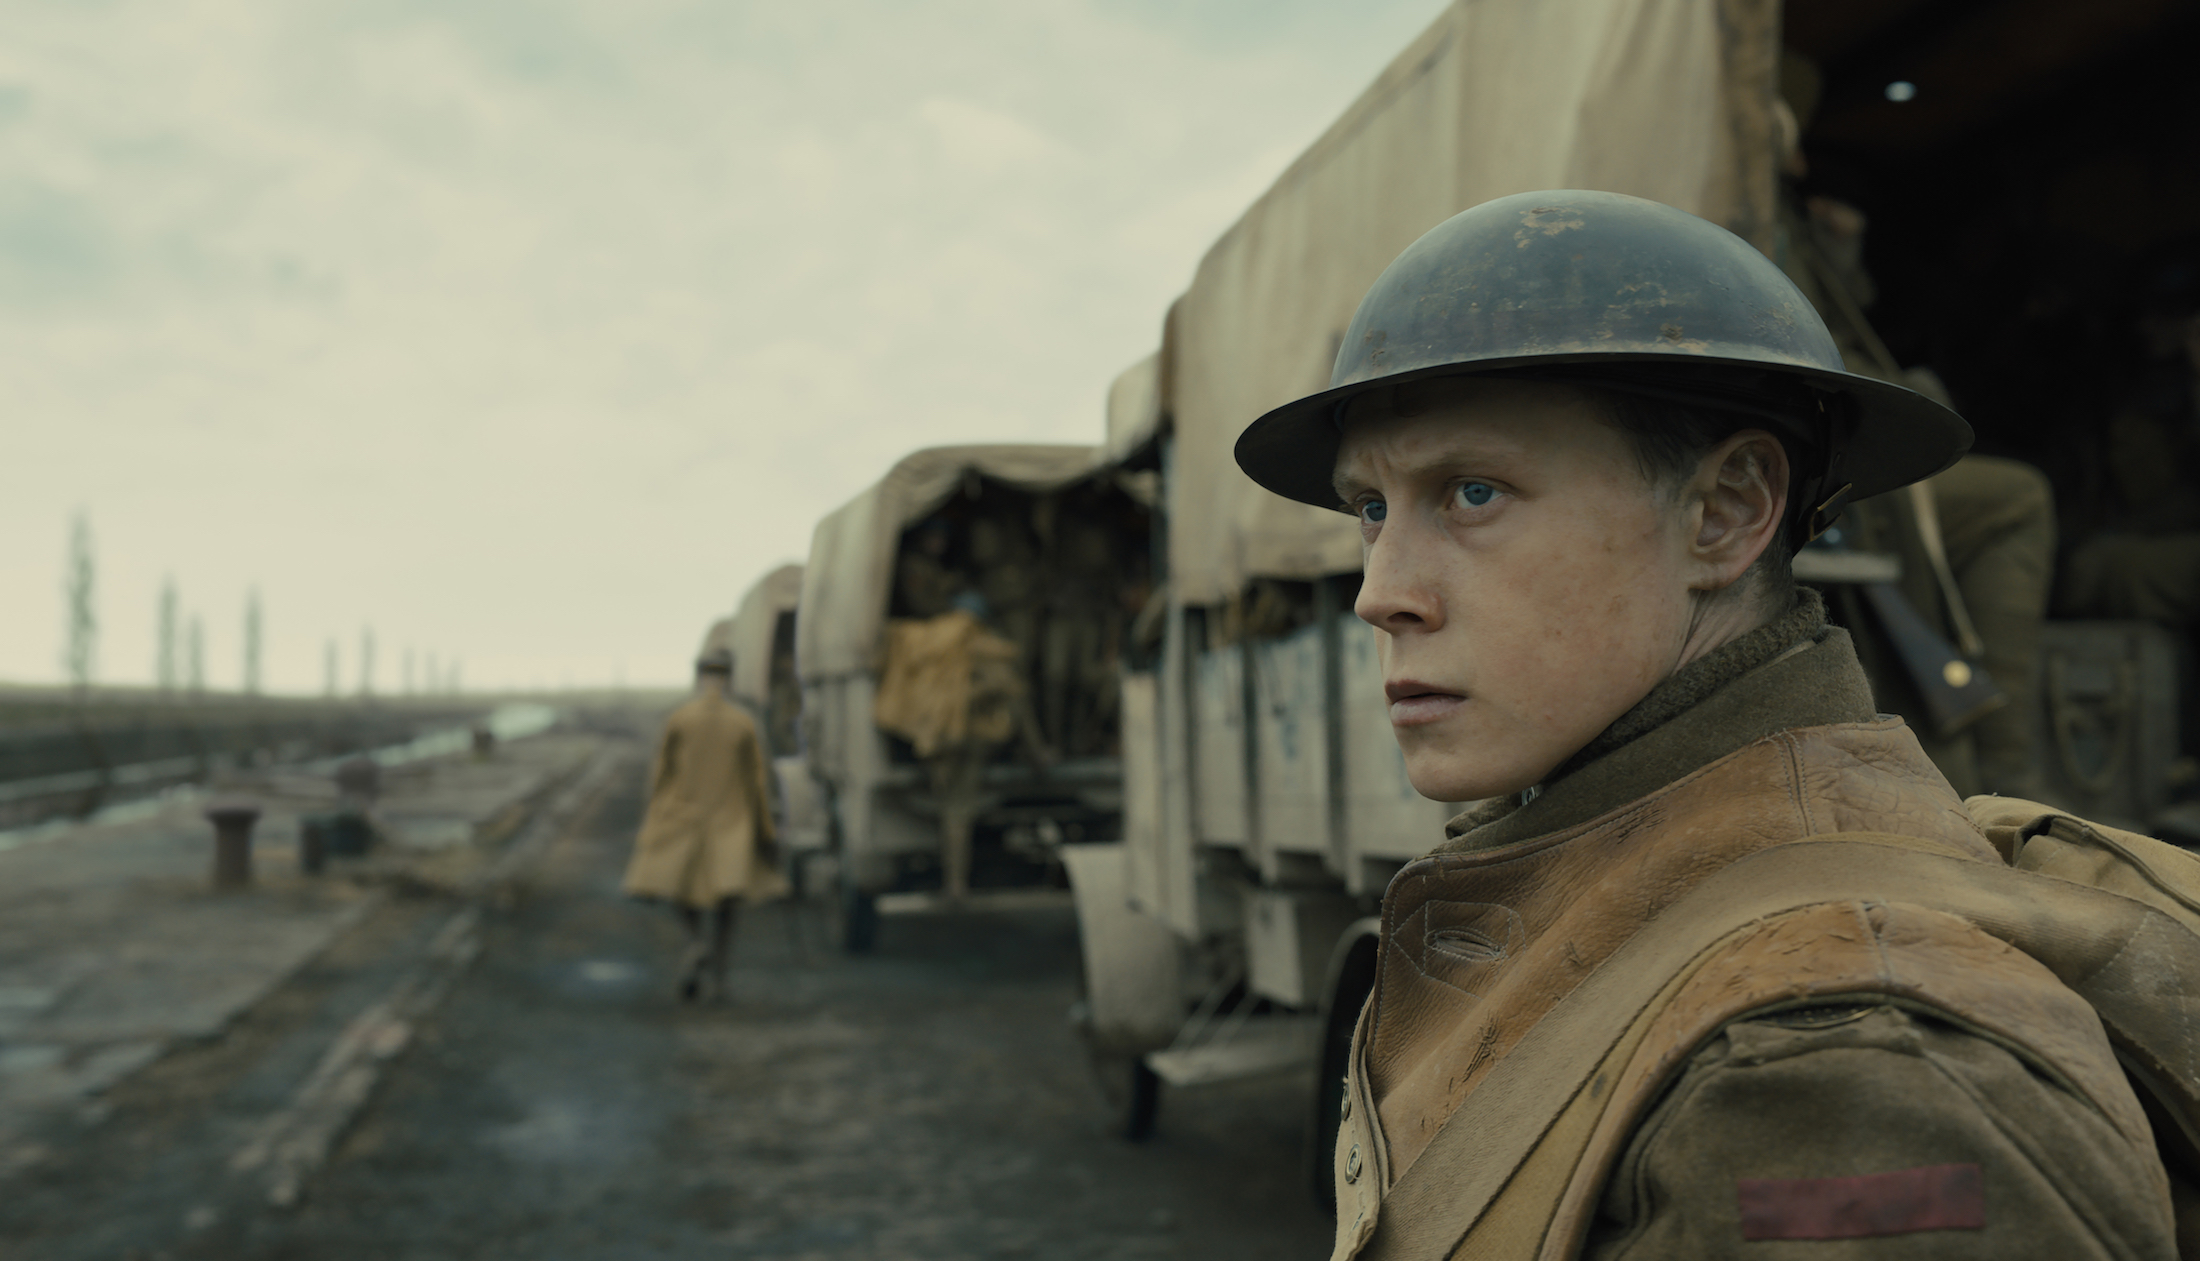 George MacKay as Schofield, looking away from a line of WWI trucks driving down a dirt road in 1917